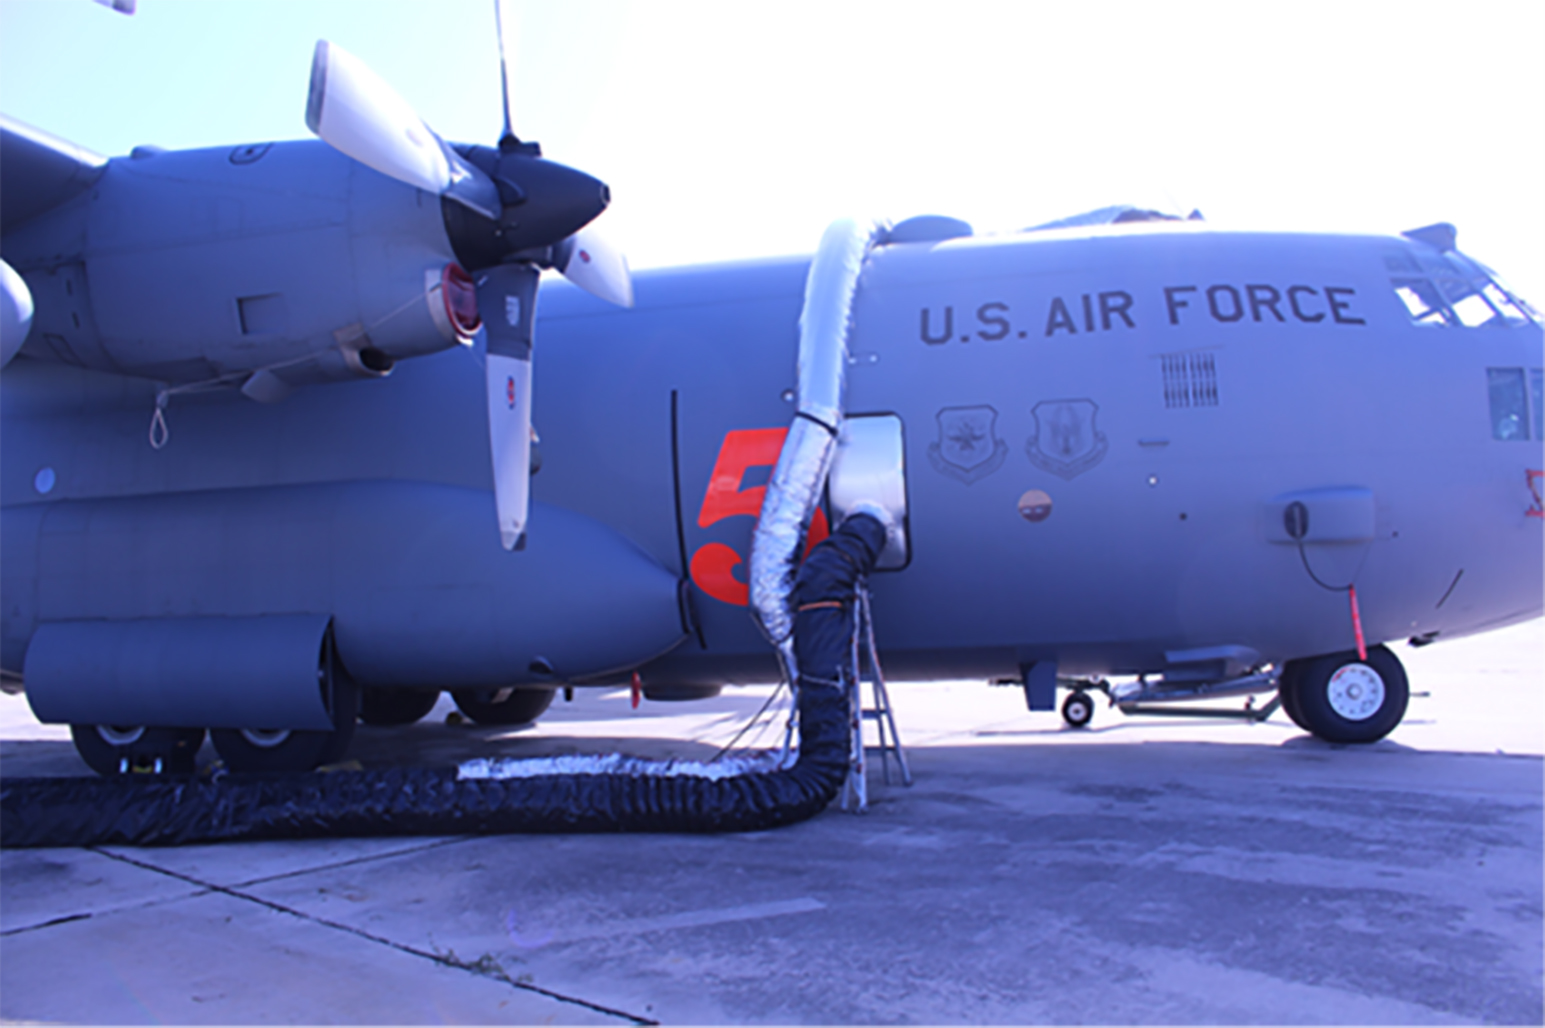 Bio and Nano tech team from UES pairs with AFRL team to fight COVID-19 by decontaminating aircrafts for the Air Force.